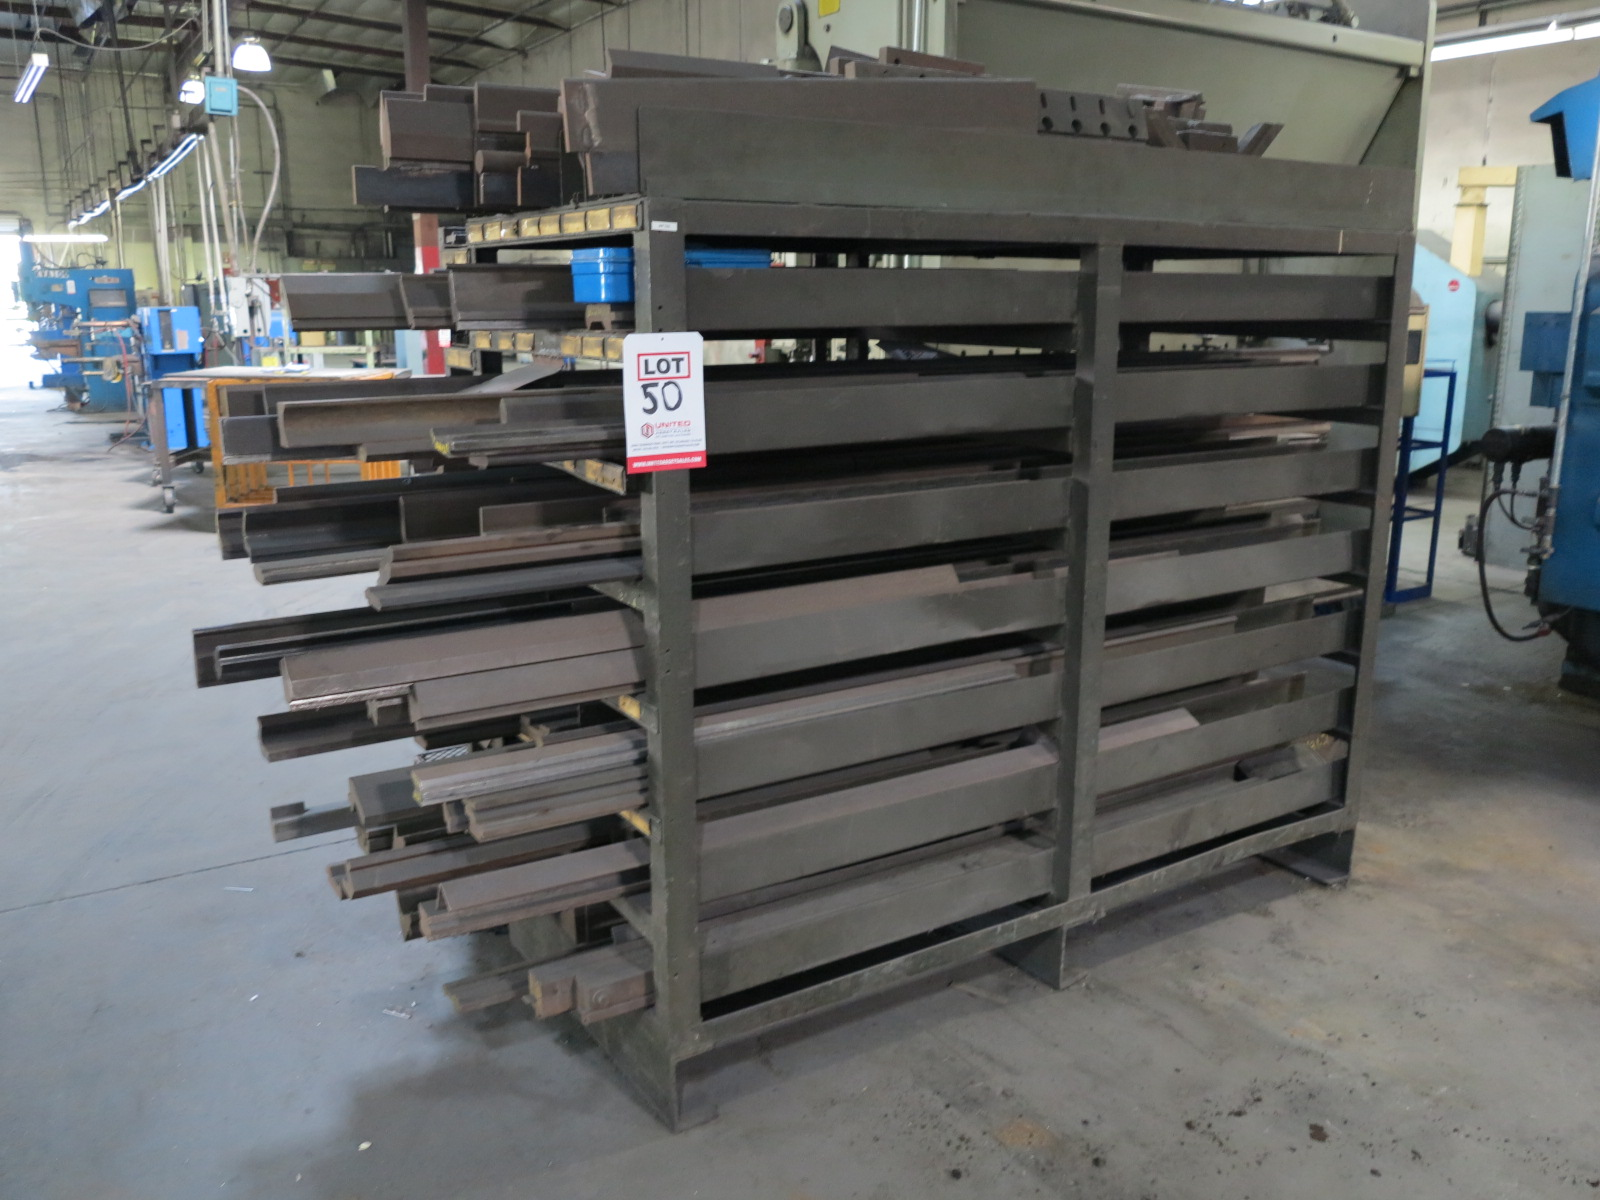 LOT - LARGE QUANTITY OF BRAKE DIES, RACK INCLUDED